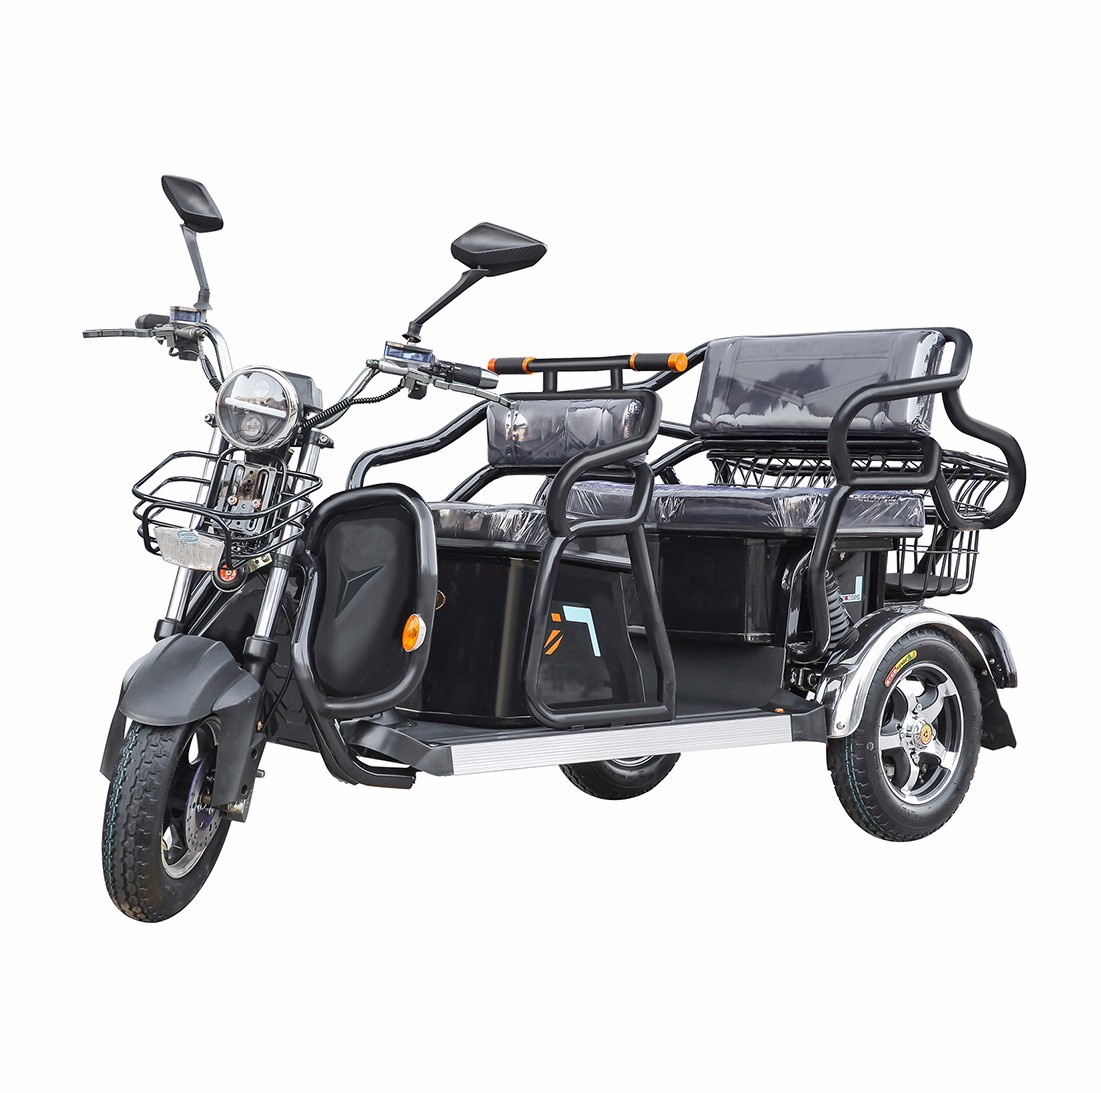 3 Wheel Electric Bicycle Adult Pedal Car Manufacturers, 3 Wheel Electric Bicycle Adult Pedal Car Factory, Supply 3 Wheel Electric Bicycle Adult Pedal Car